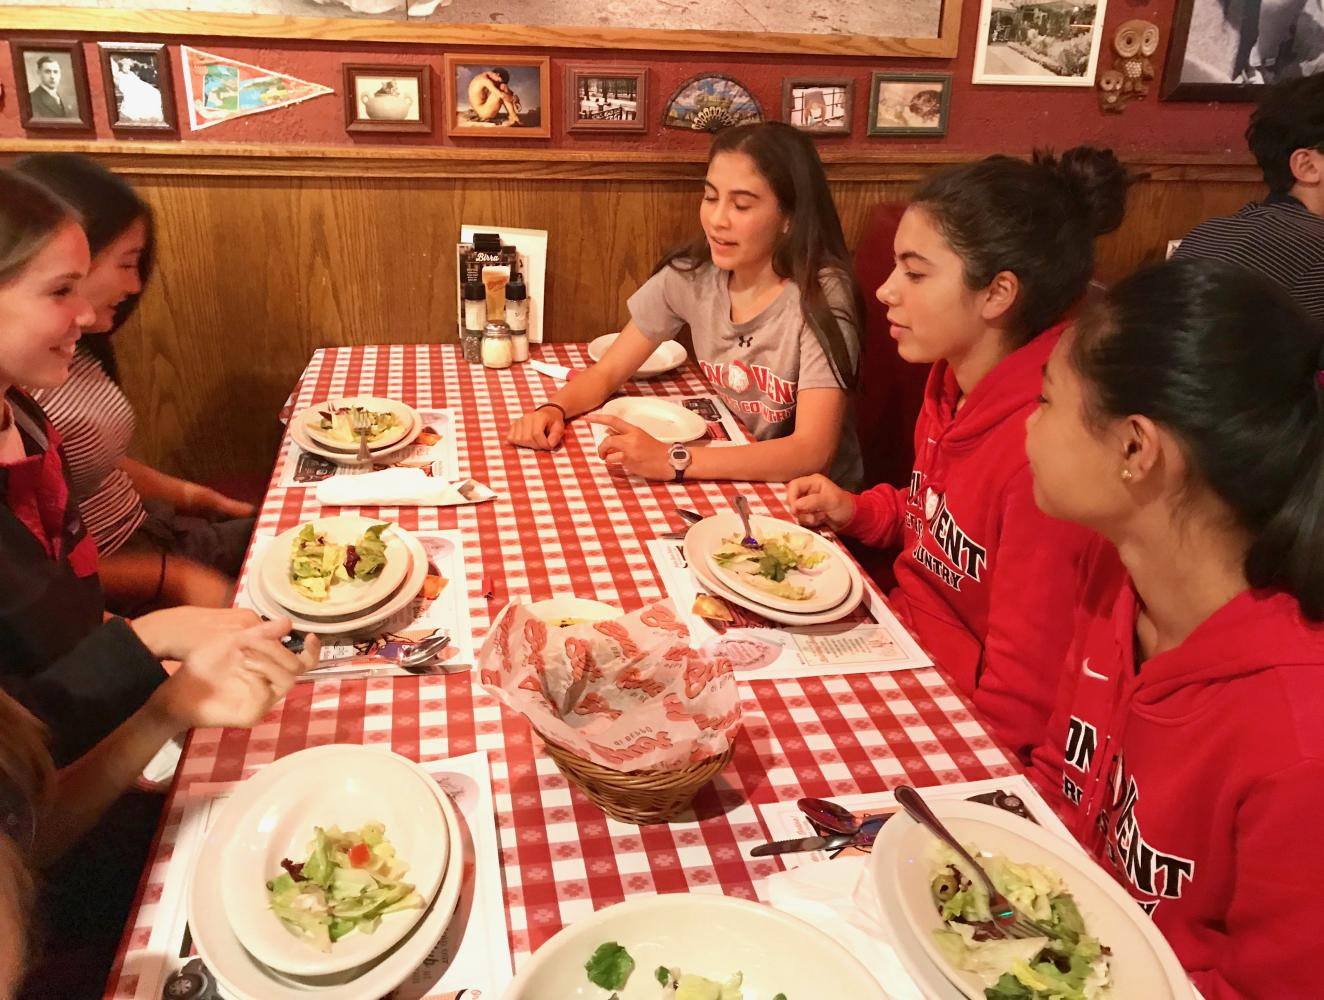 Freshmen part of the cross-country team eat dinner at Buca de Beppo in preparation for their race at the Mt. SAC Invitational tomorrow. Runners left school after F Period and bused to Los Angeles.